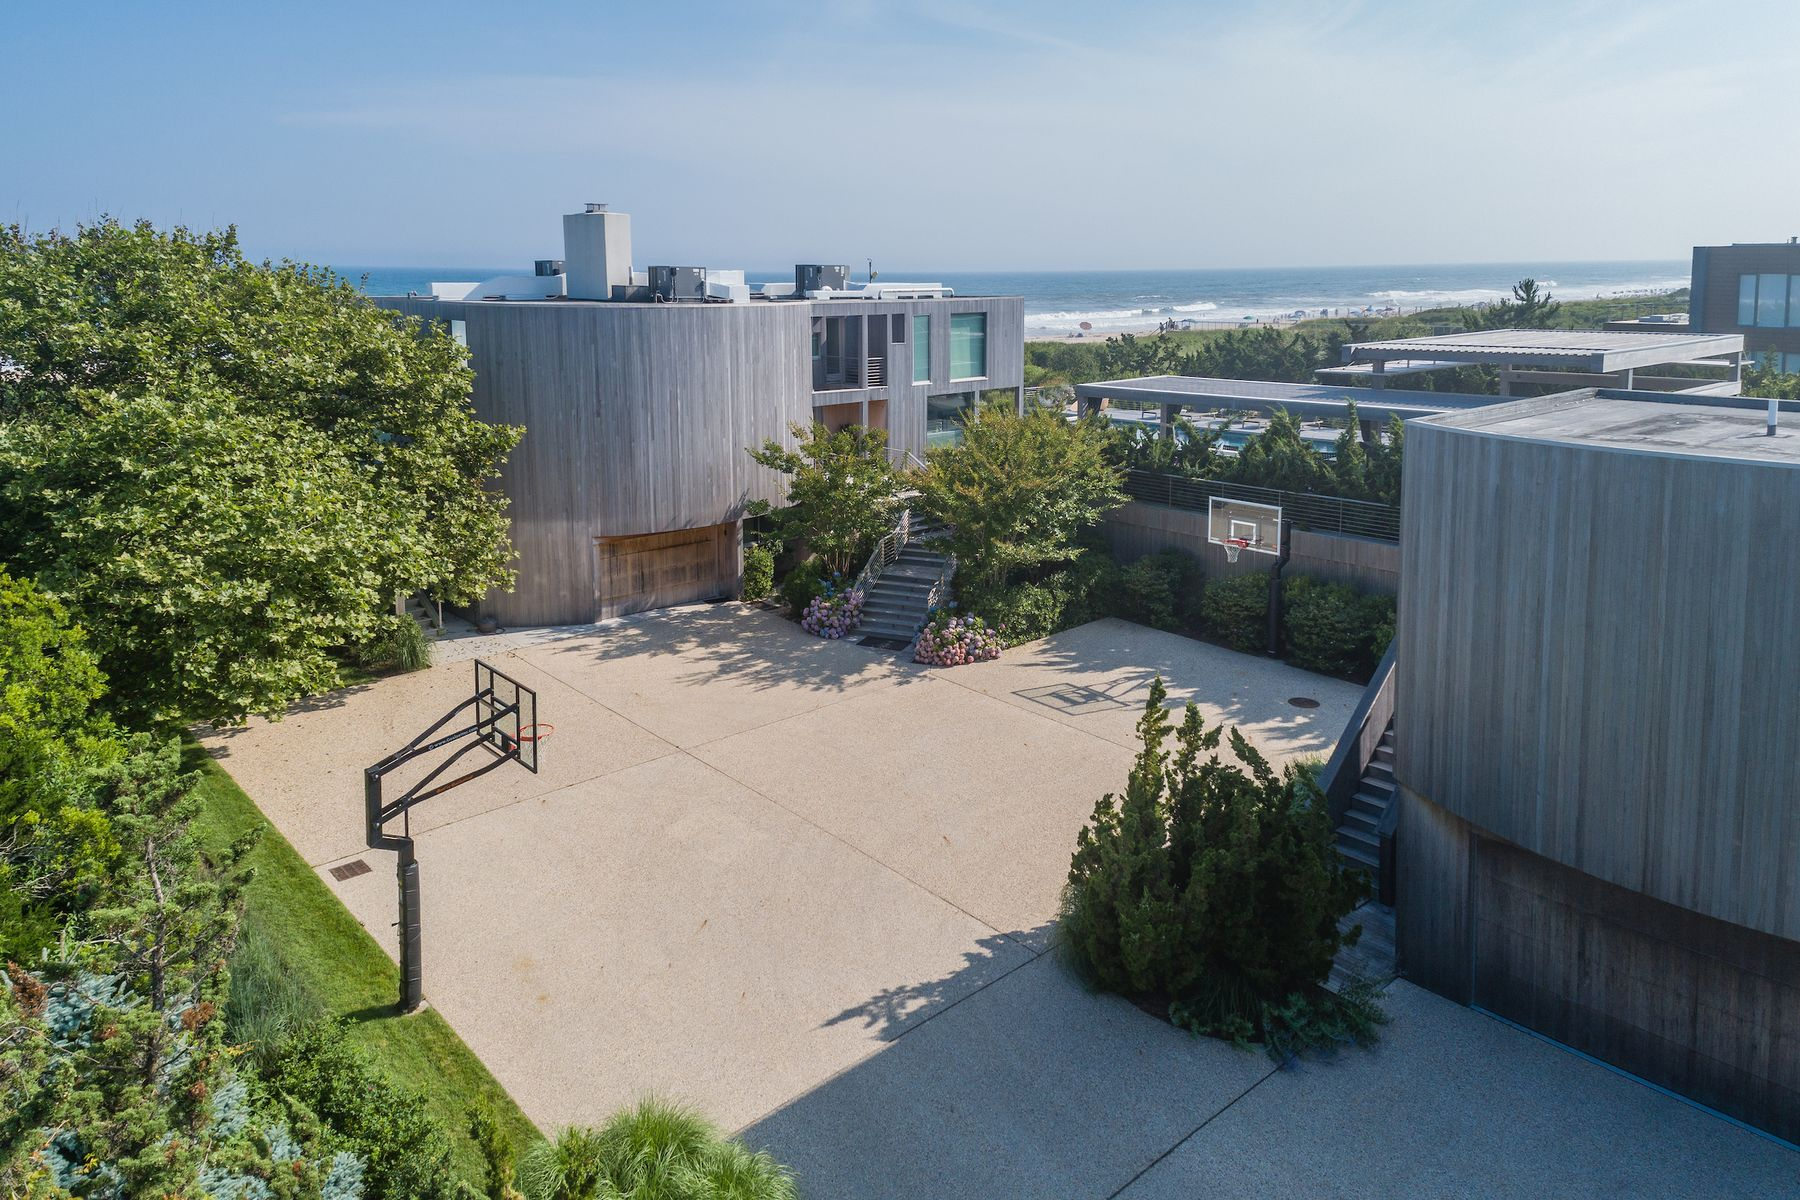 Single Family Home for Active at The Best of The Best Oceanfront Bridgehampton, New York 11932 United States